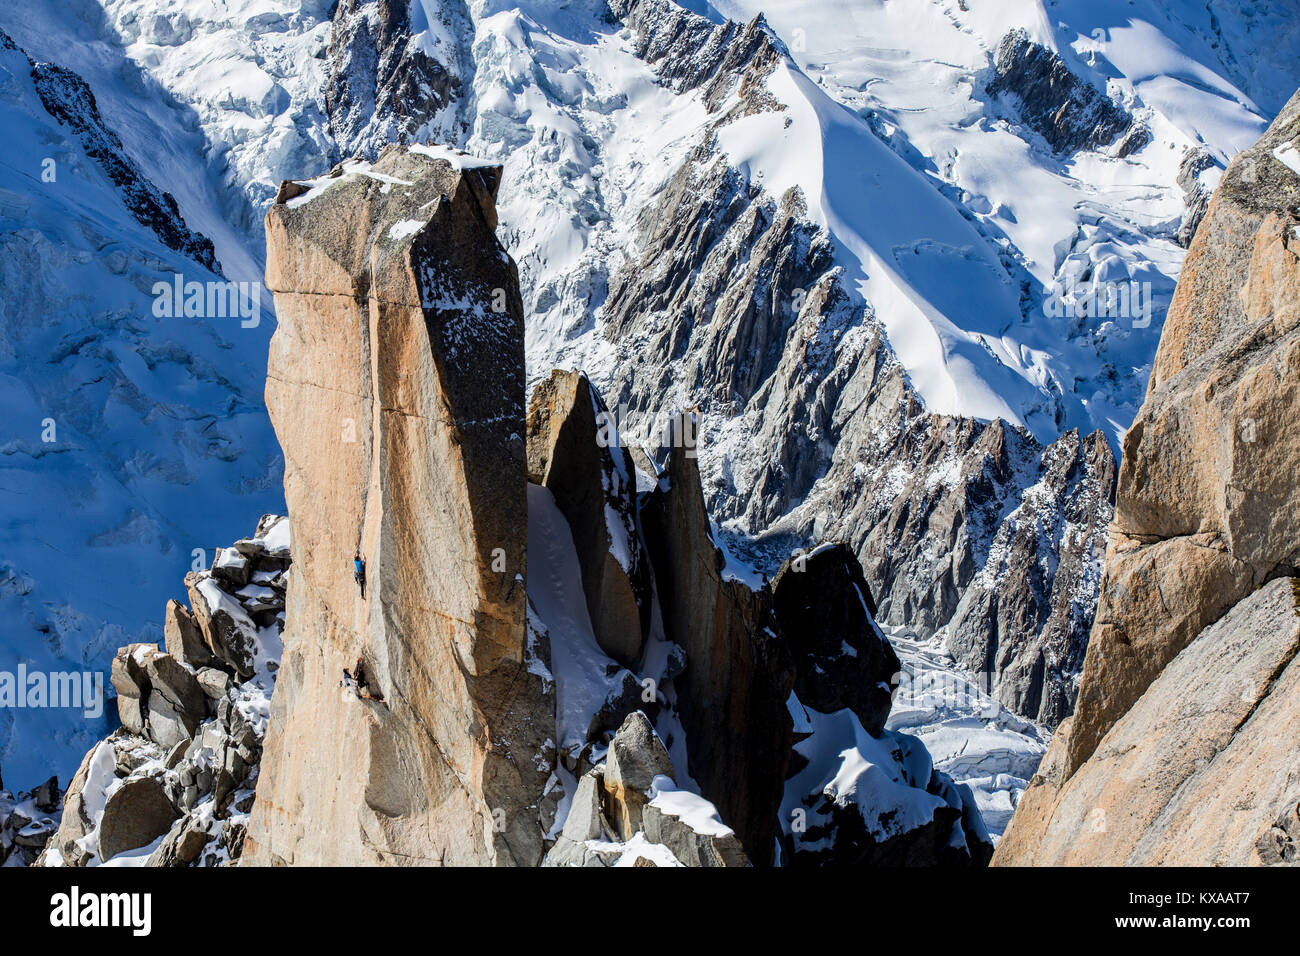 Two alpinists climbing rock pillar below Aiguille du Midi in French Alps, Chamonix Mont-Blanc, Haute Savoie, France - Stock Image